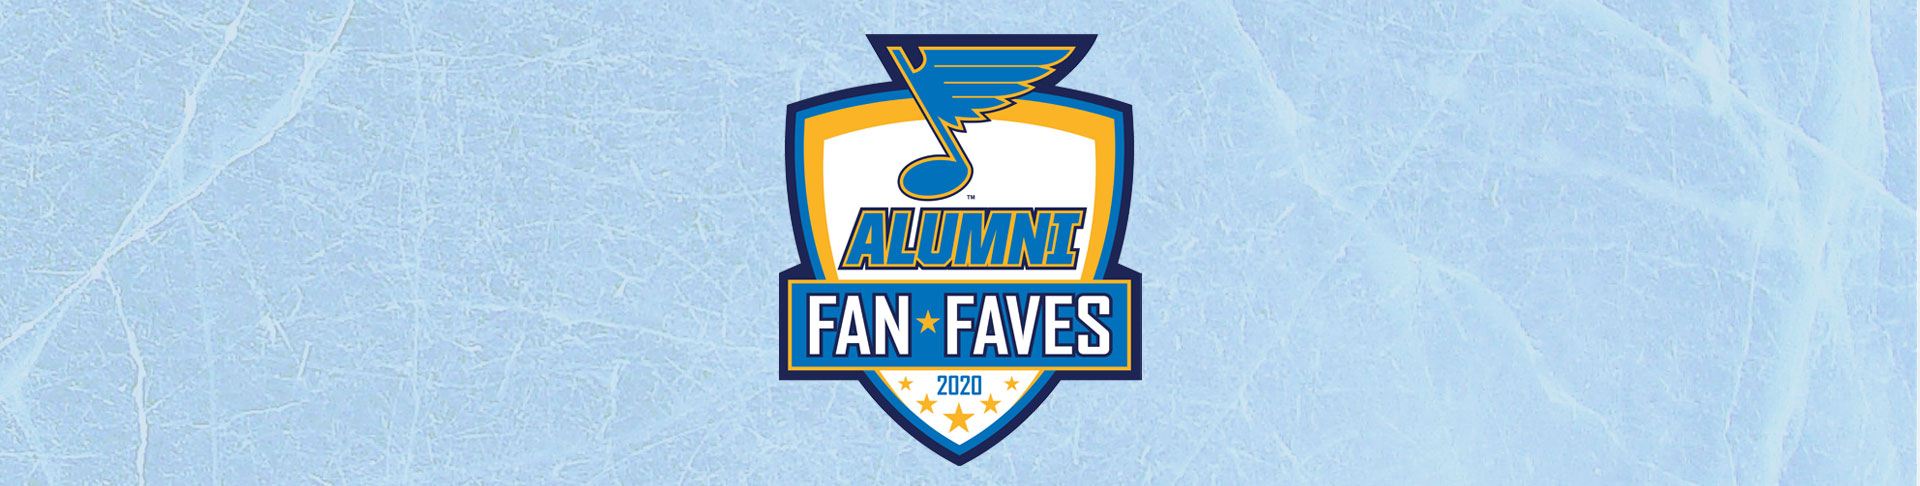 Fan Faves logo